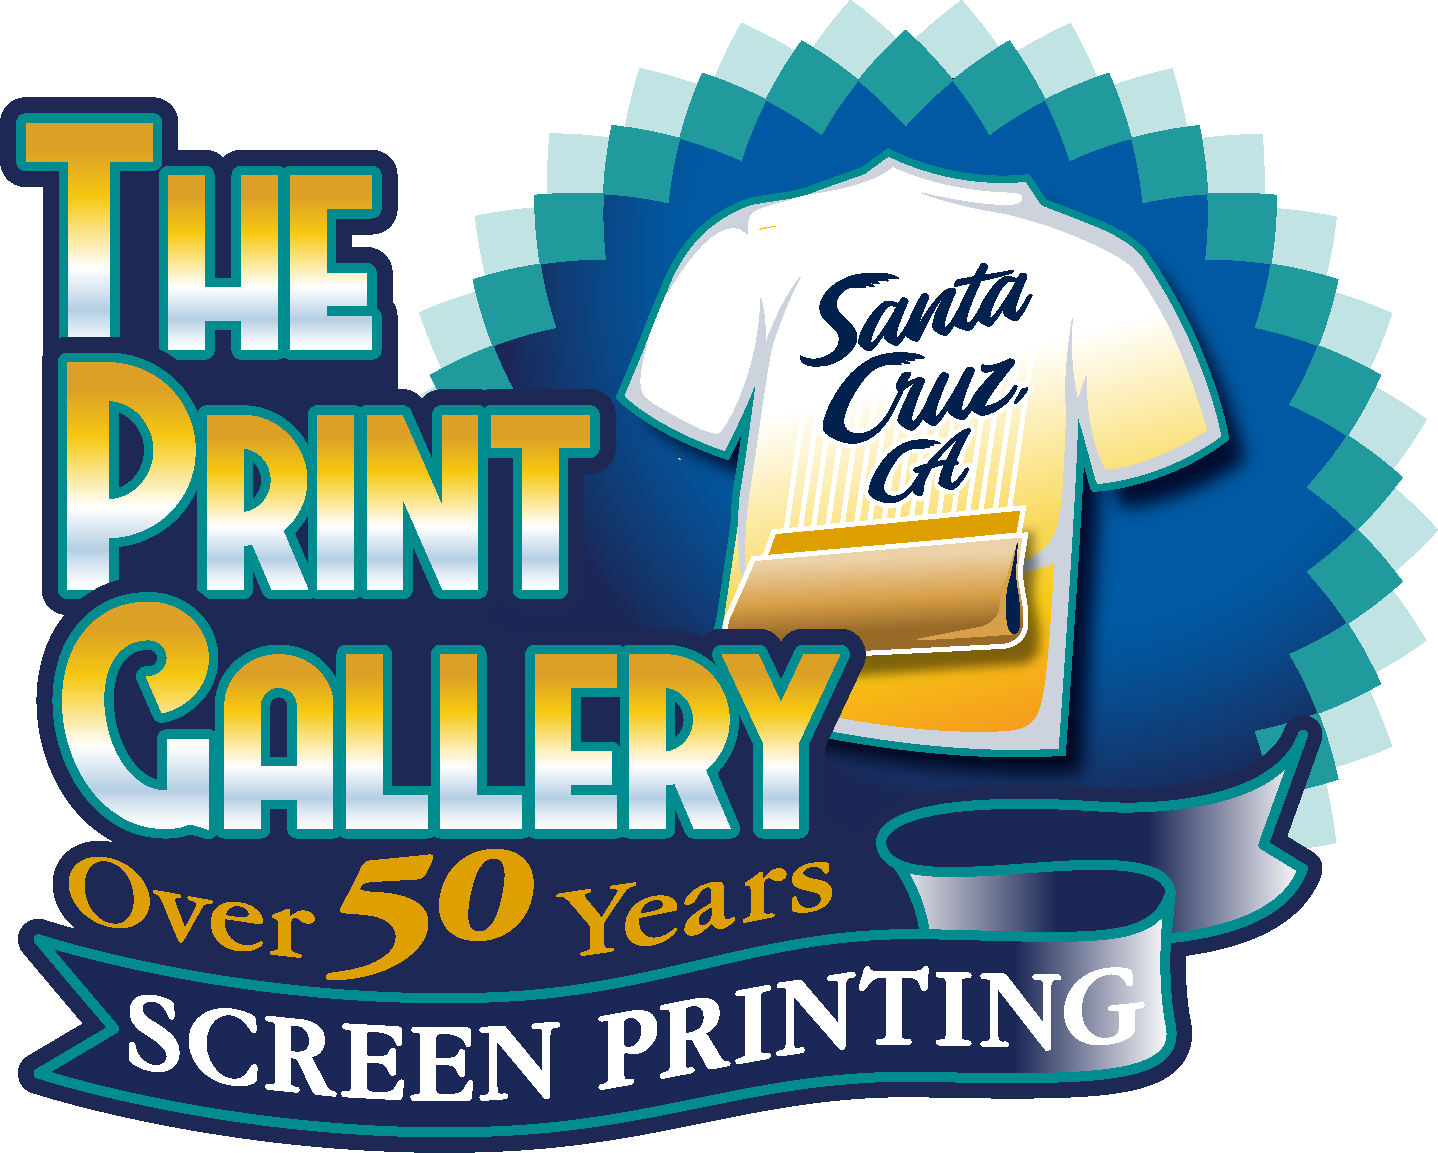 c0f1e15ab Screen Printing T Shirts & Embroidery Services in Santa Cruz CA by The Print  Gallery